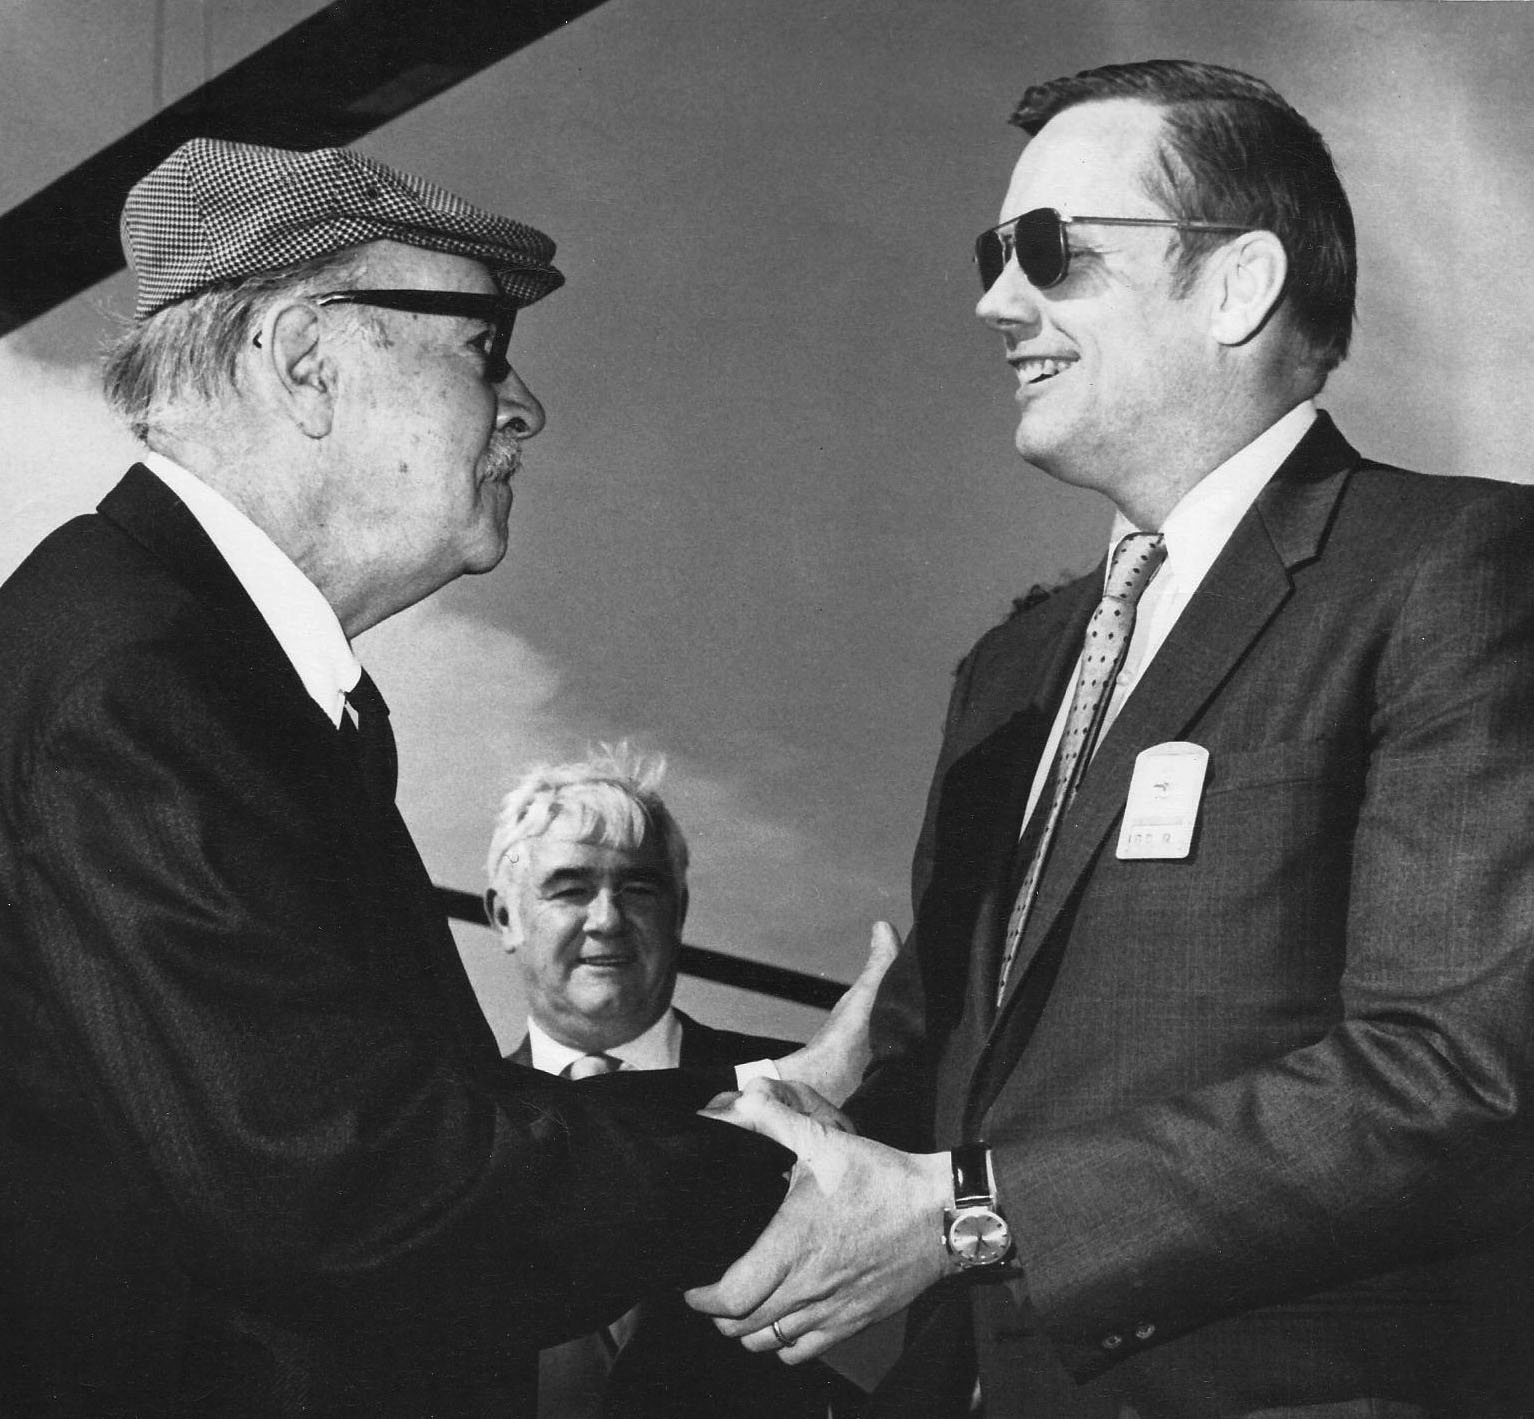 As a boy, Sikorsky was told that man would never fly. He is shown shaking hands with the first man to walk on the moon a brief 66 years after the Wright Brothers flew. (Photo courtesy of Igor I. Sikorsky Historical Archives)